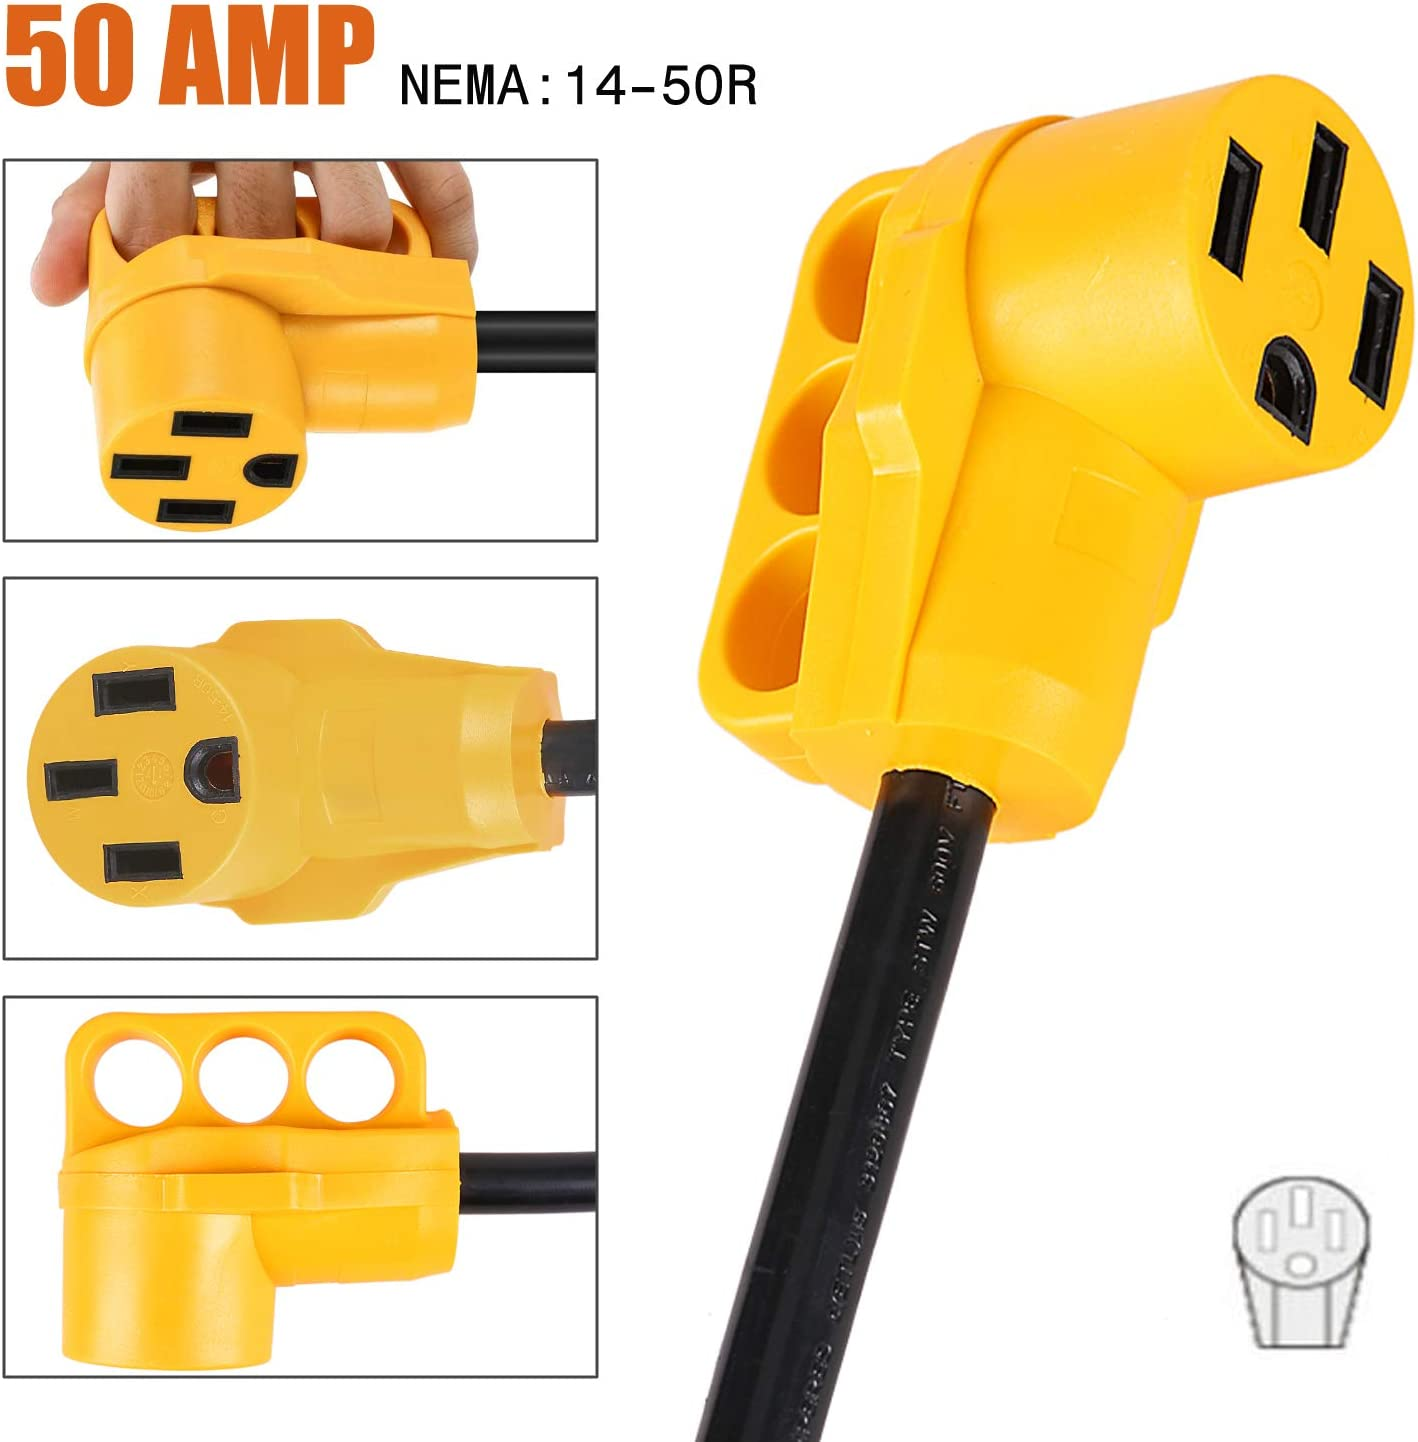 12Inch Length 30A Male to 50A Female RV Camper Trailer 5th Wheel Power Adapter with Grip Handle RV Electrical Converter Cord Cable